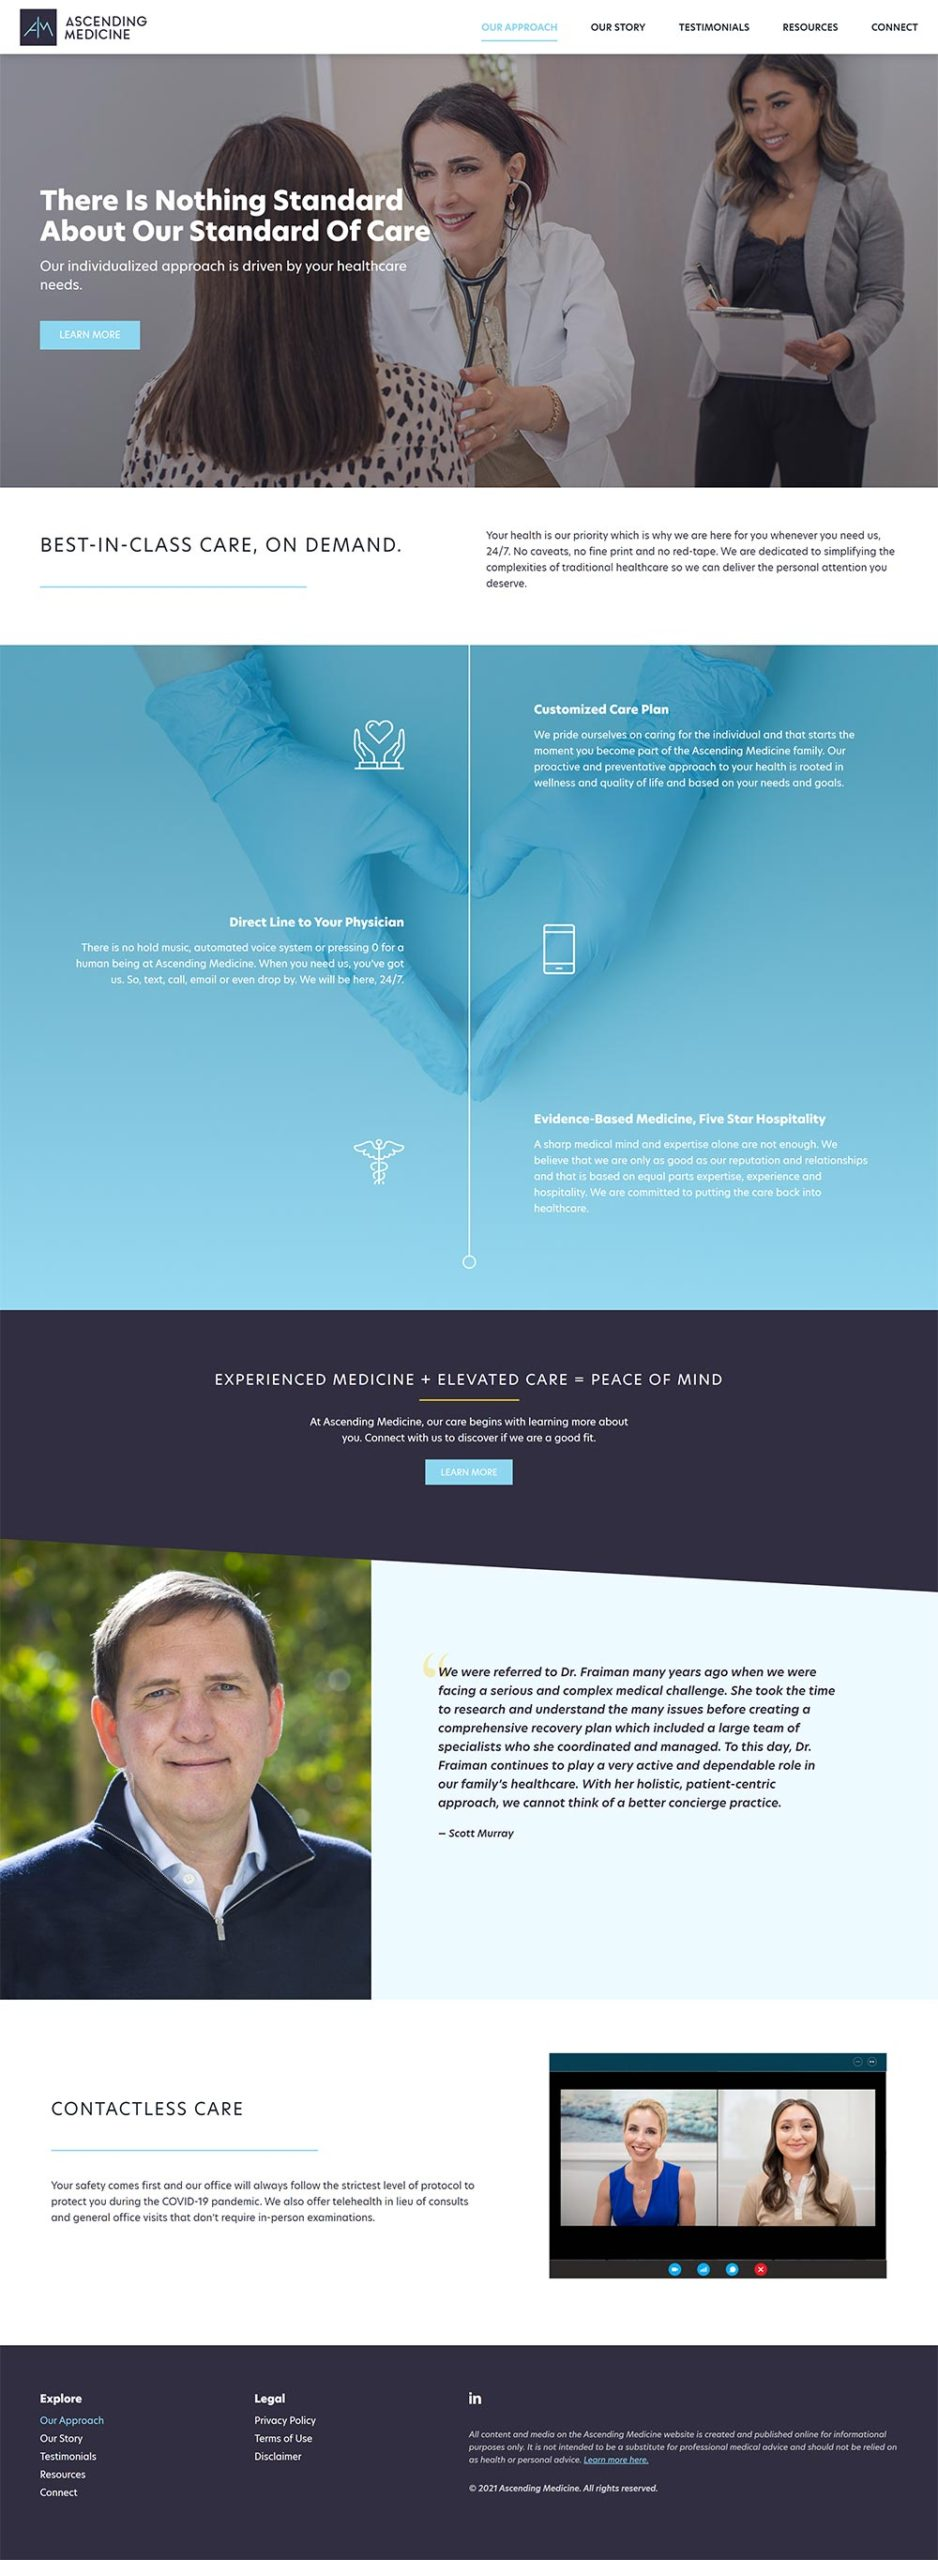 """Ascending Medicine """"Our Approach"""" web page designed by Chimento Agency"""